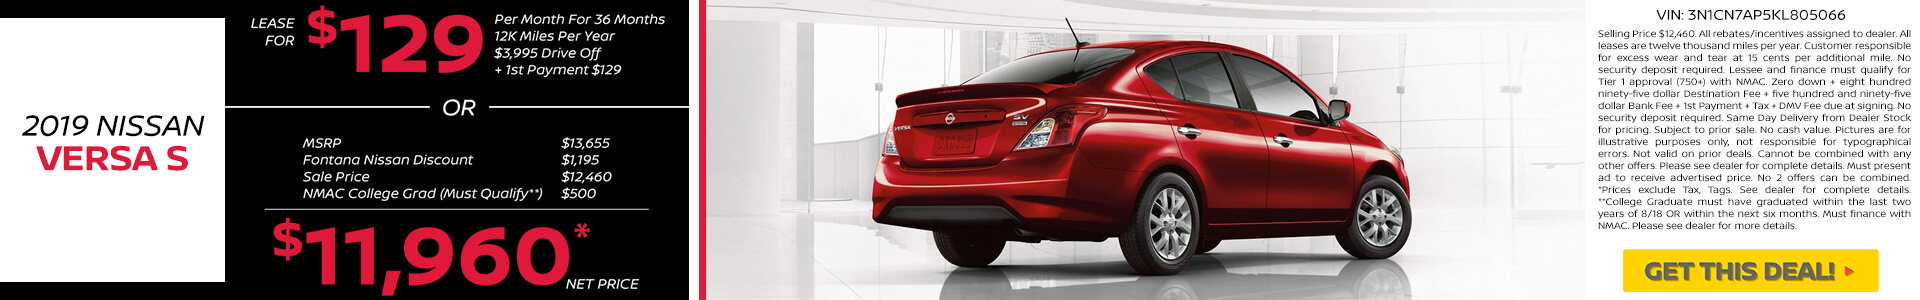 Nissan Versa $129 Lease or $11,960 Purchase